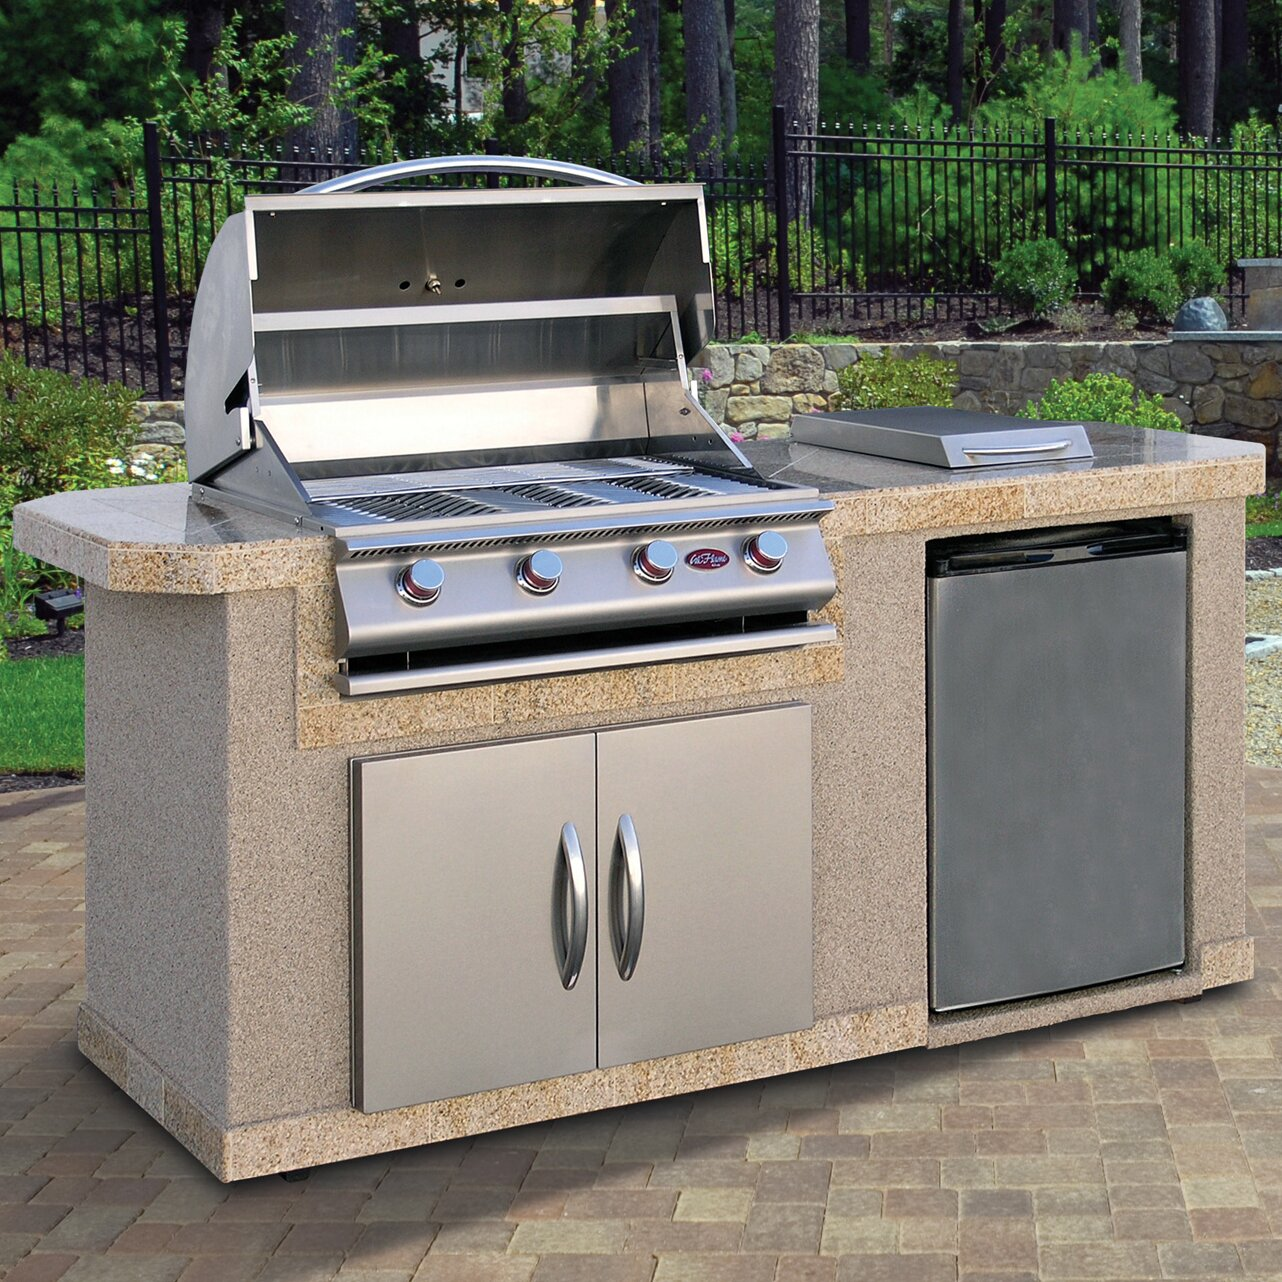 Outdoor Kitchen Gas Grill Calflame Outdoor Kitchen Islands 4 Burner Built In Propane Gas